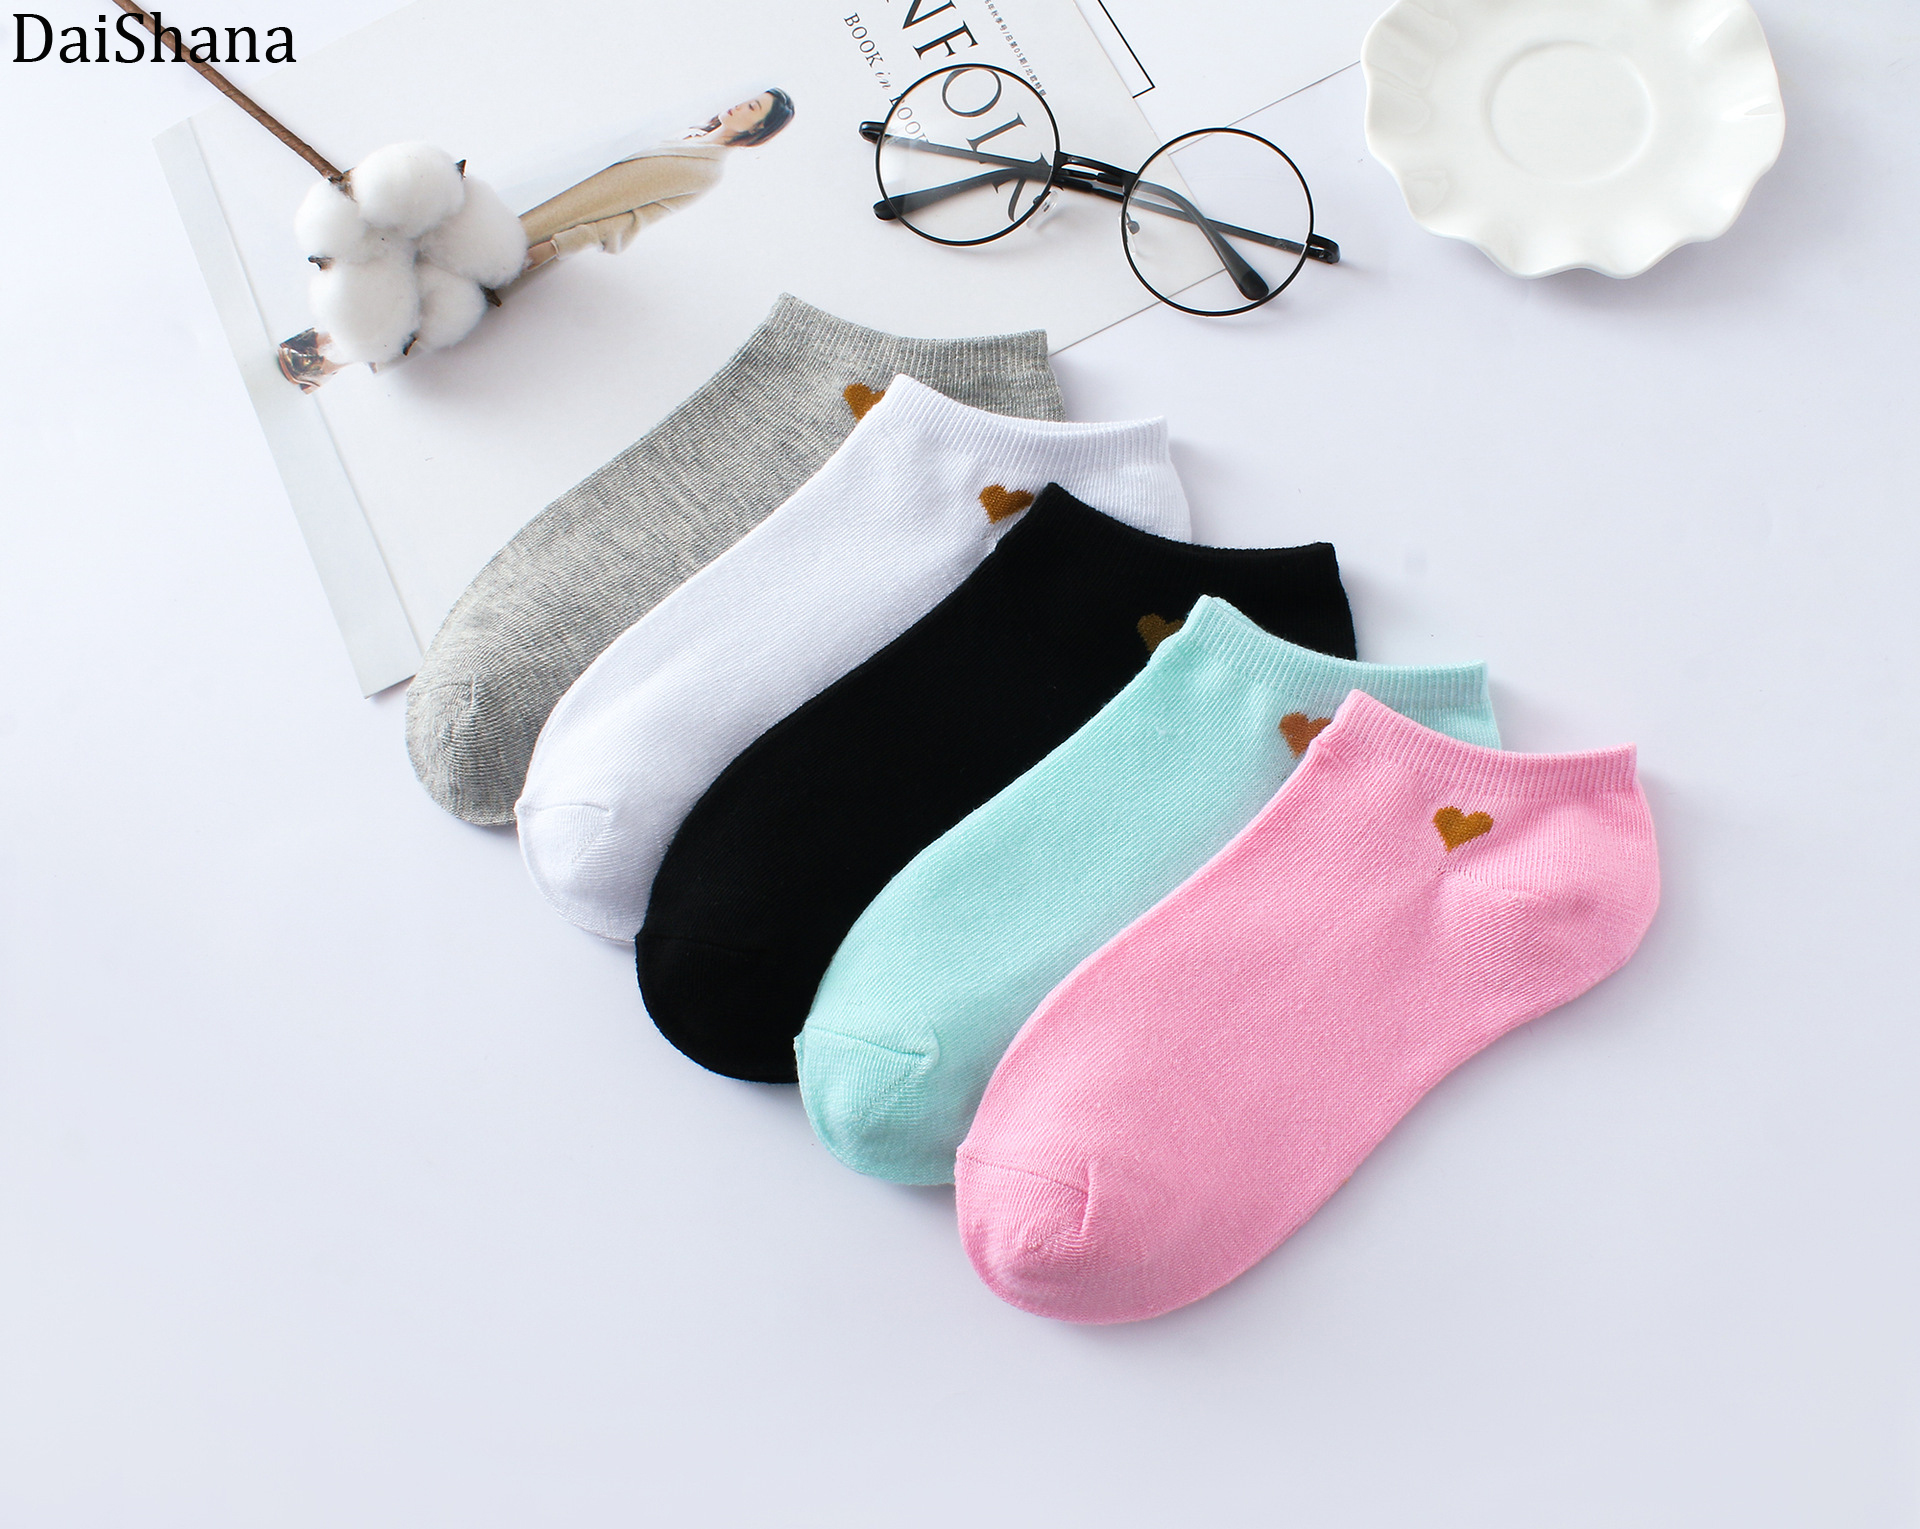 1 Pair Spring New Arrivl Women Socks Kawaii Fashion Girls Ankle Funny Cotton Socks Casual Candy Colors Breathable Sock Skarpetki